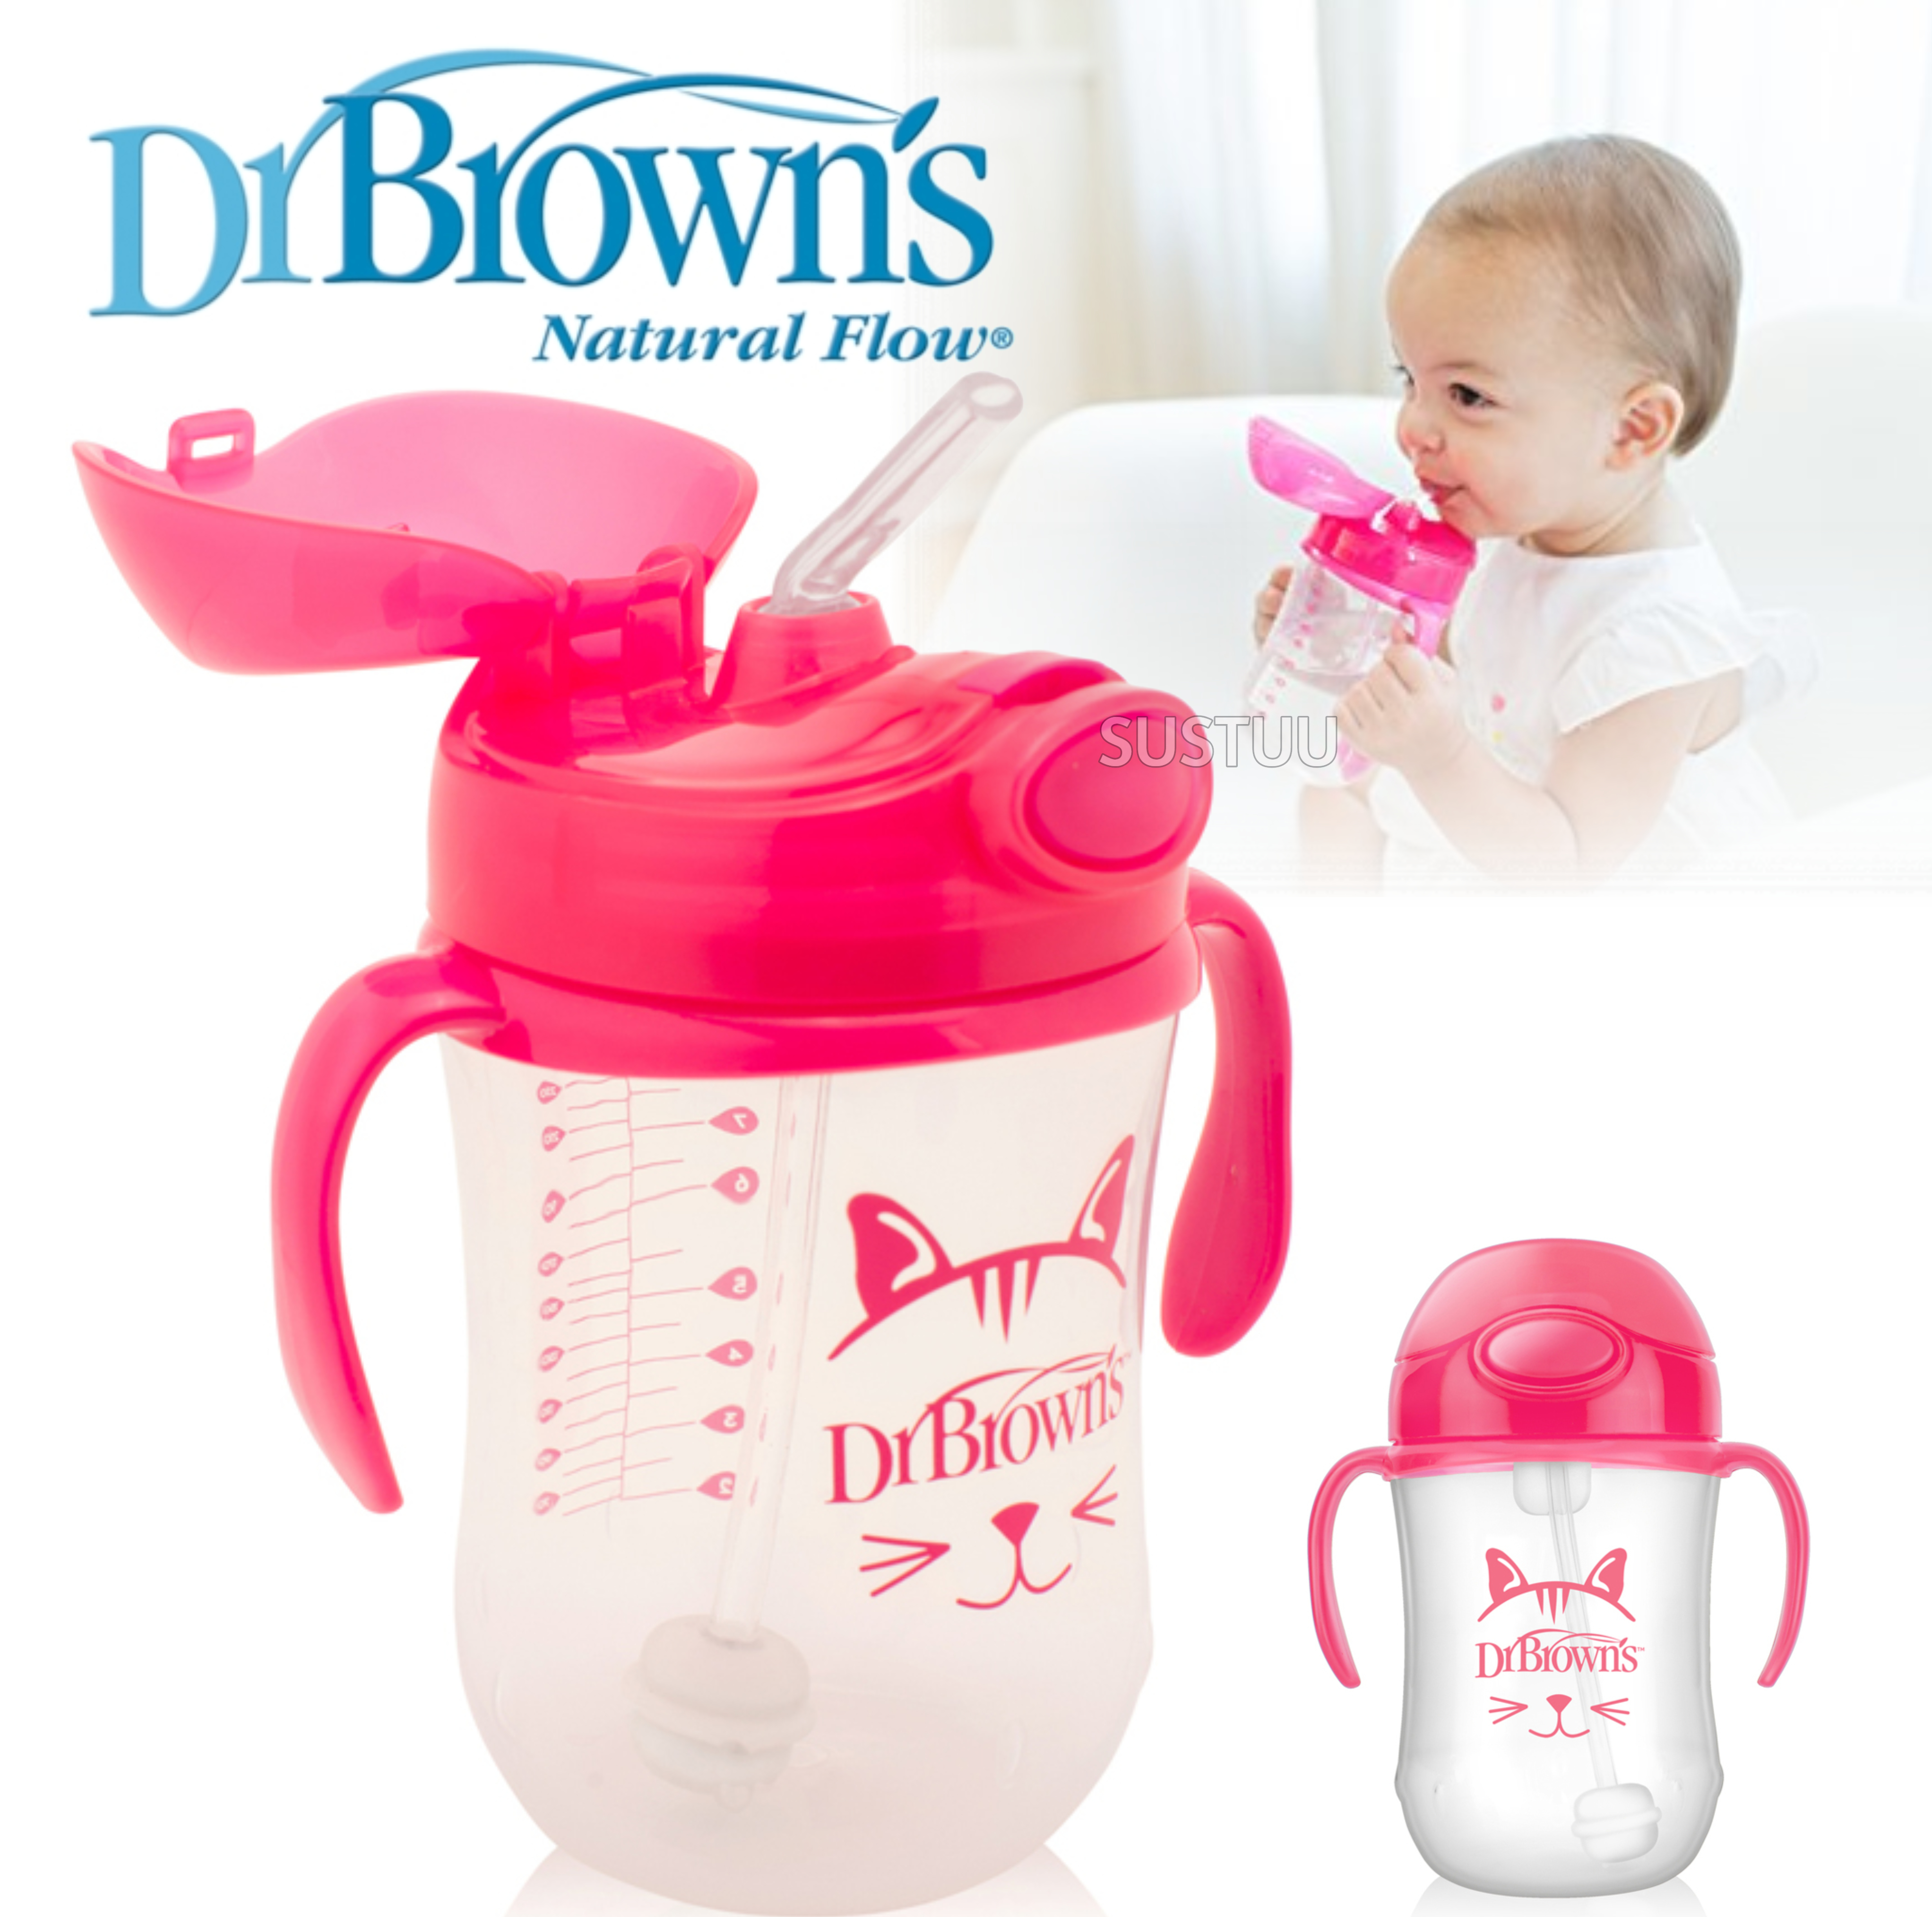 Dr Brown's Baby Weighted Spillproof Straw Cup|BPA Free|Dishwasher Safe|Pink|